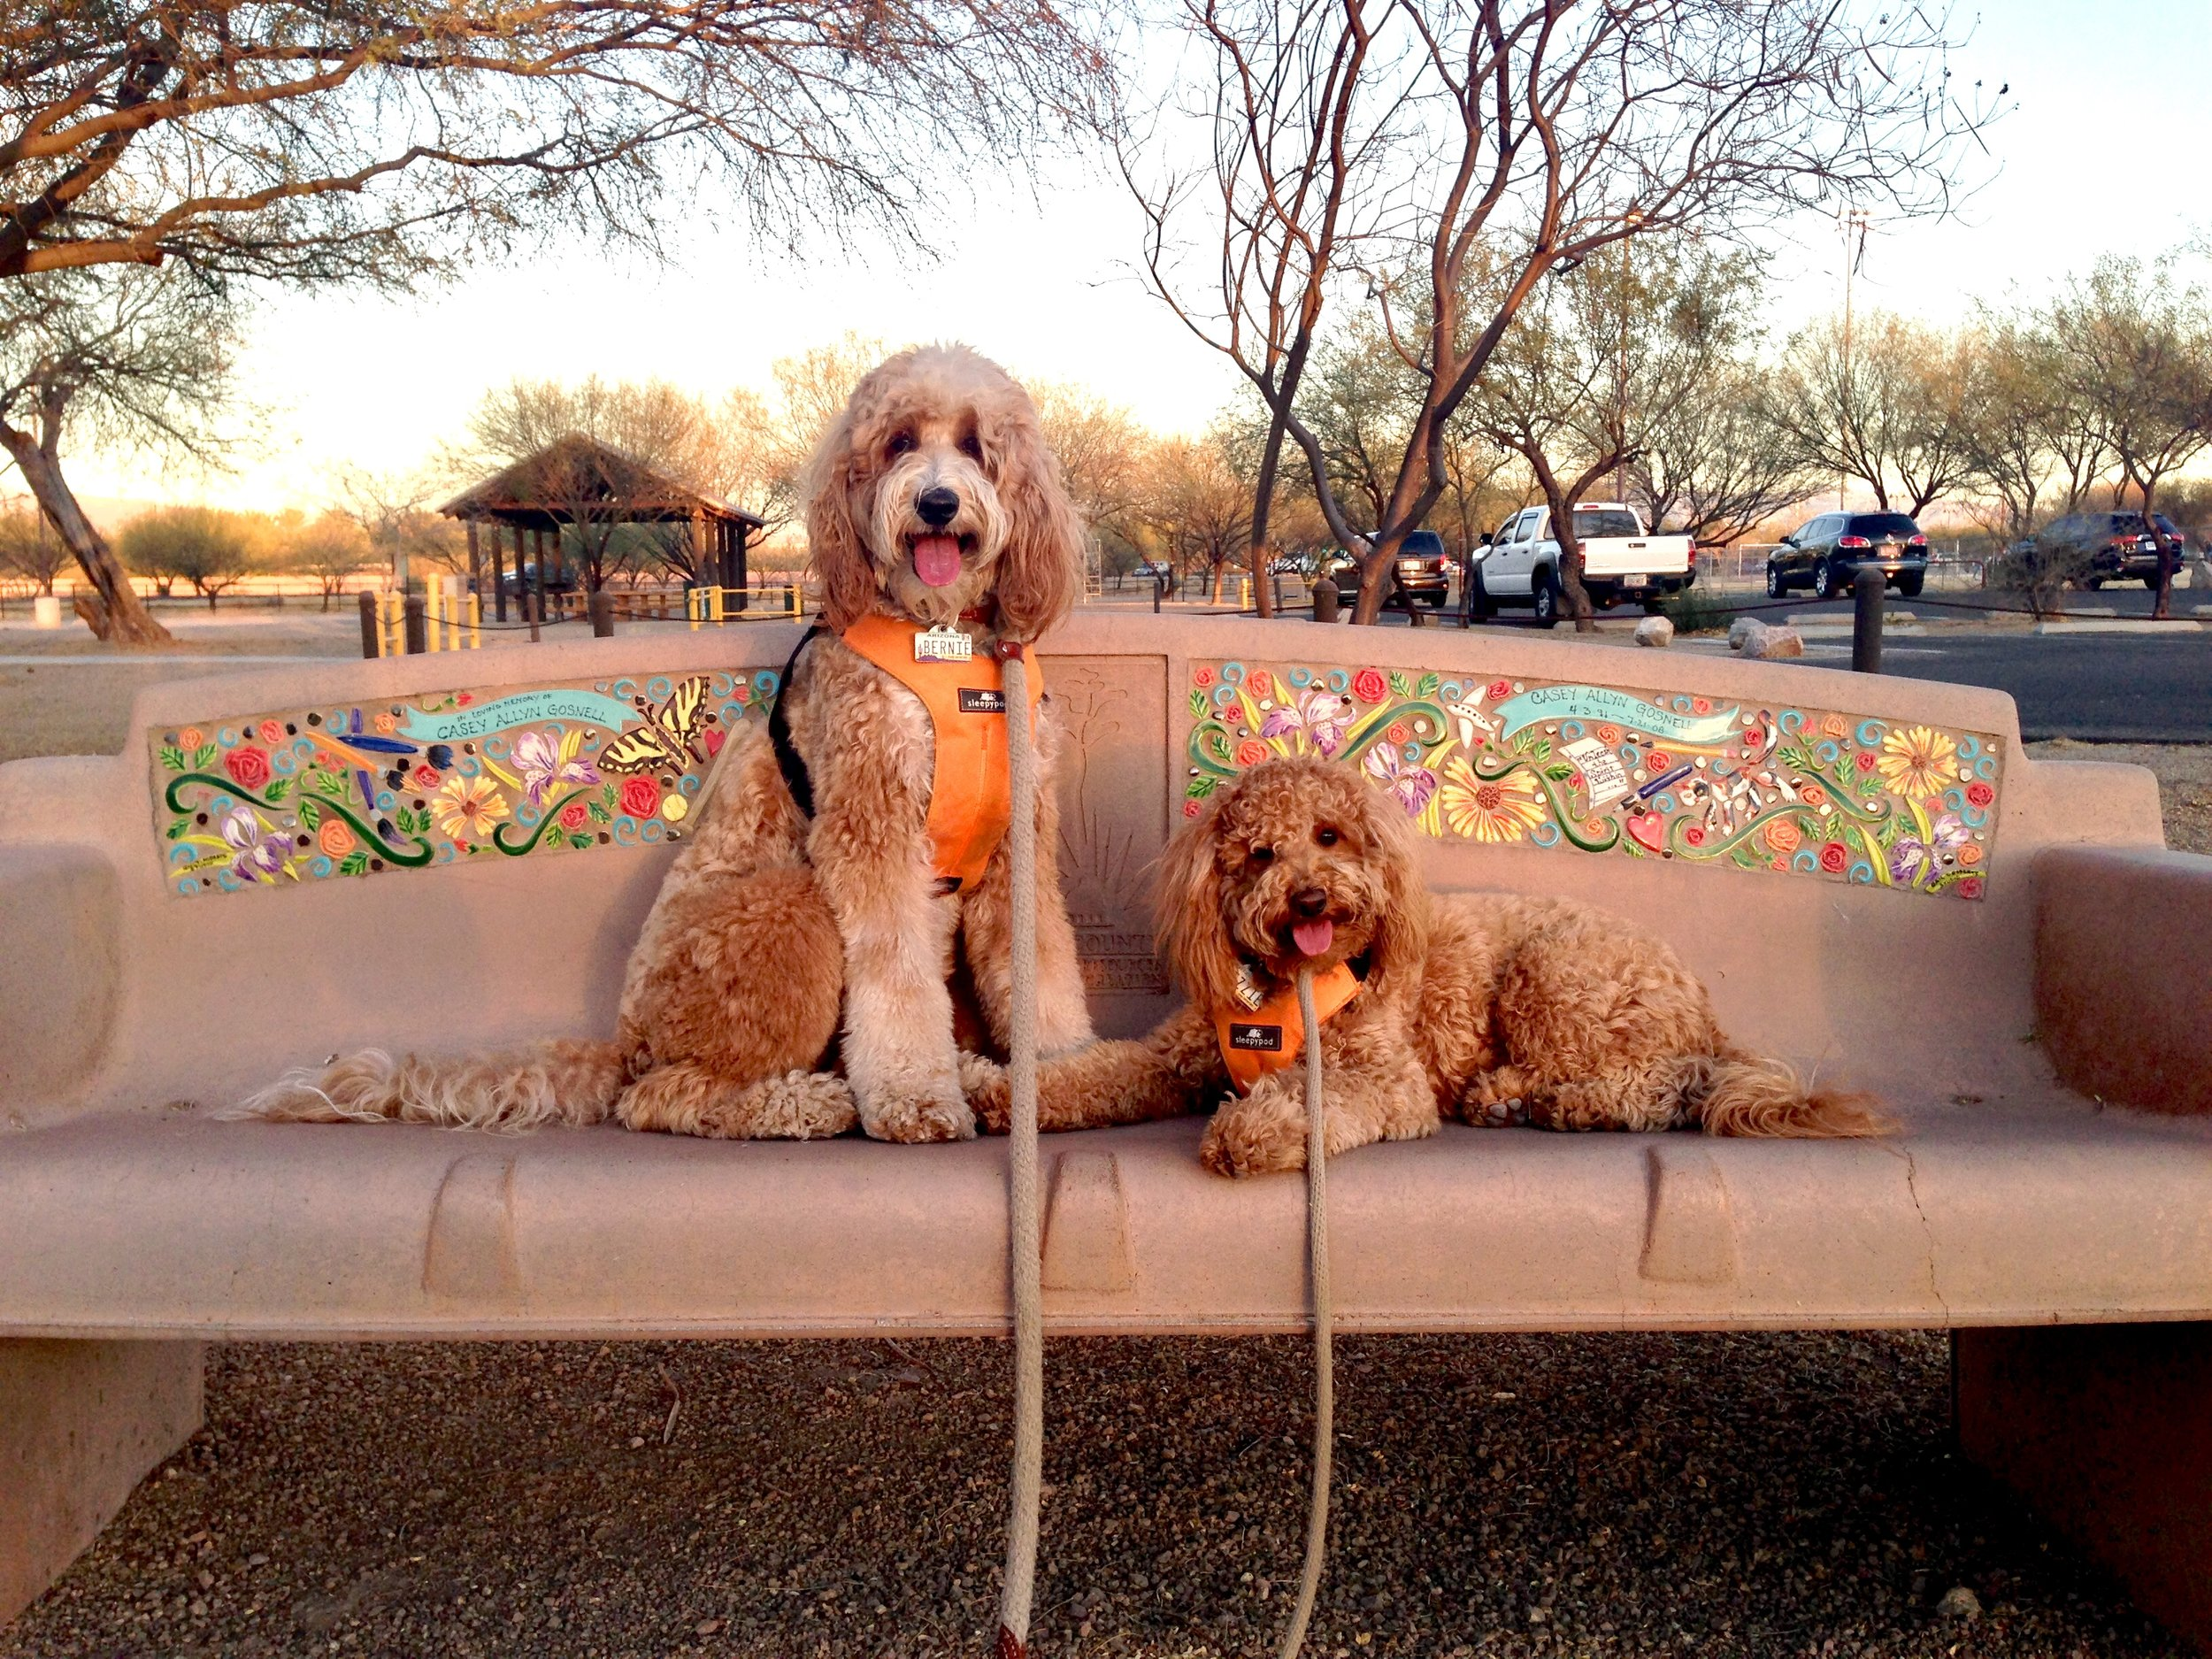 Just outside the Brandi Fenton Memorial Garden, there is a row of benches decorated with colorful garden-themed tiles. Bernie and Lizzie practice their sit-stay and down-stay on one of the benches.